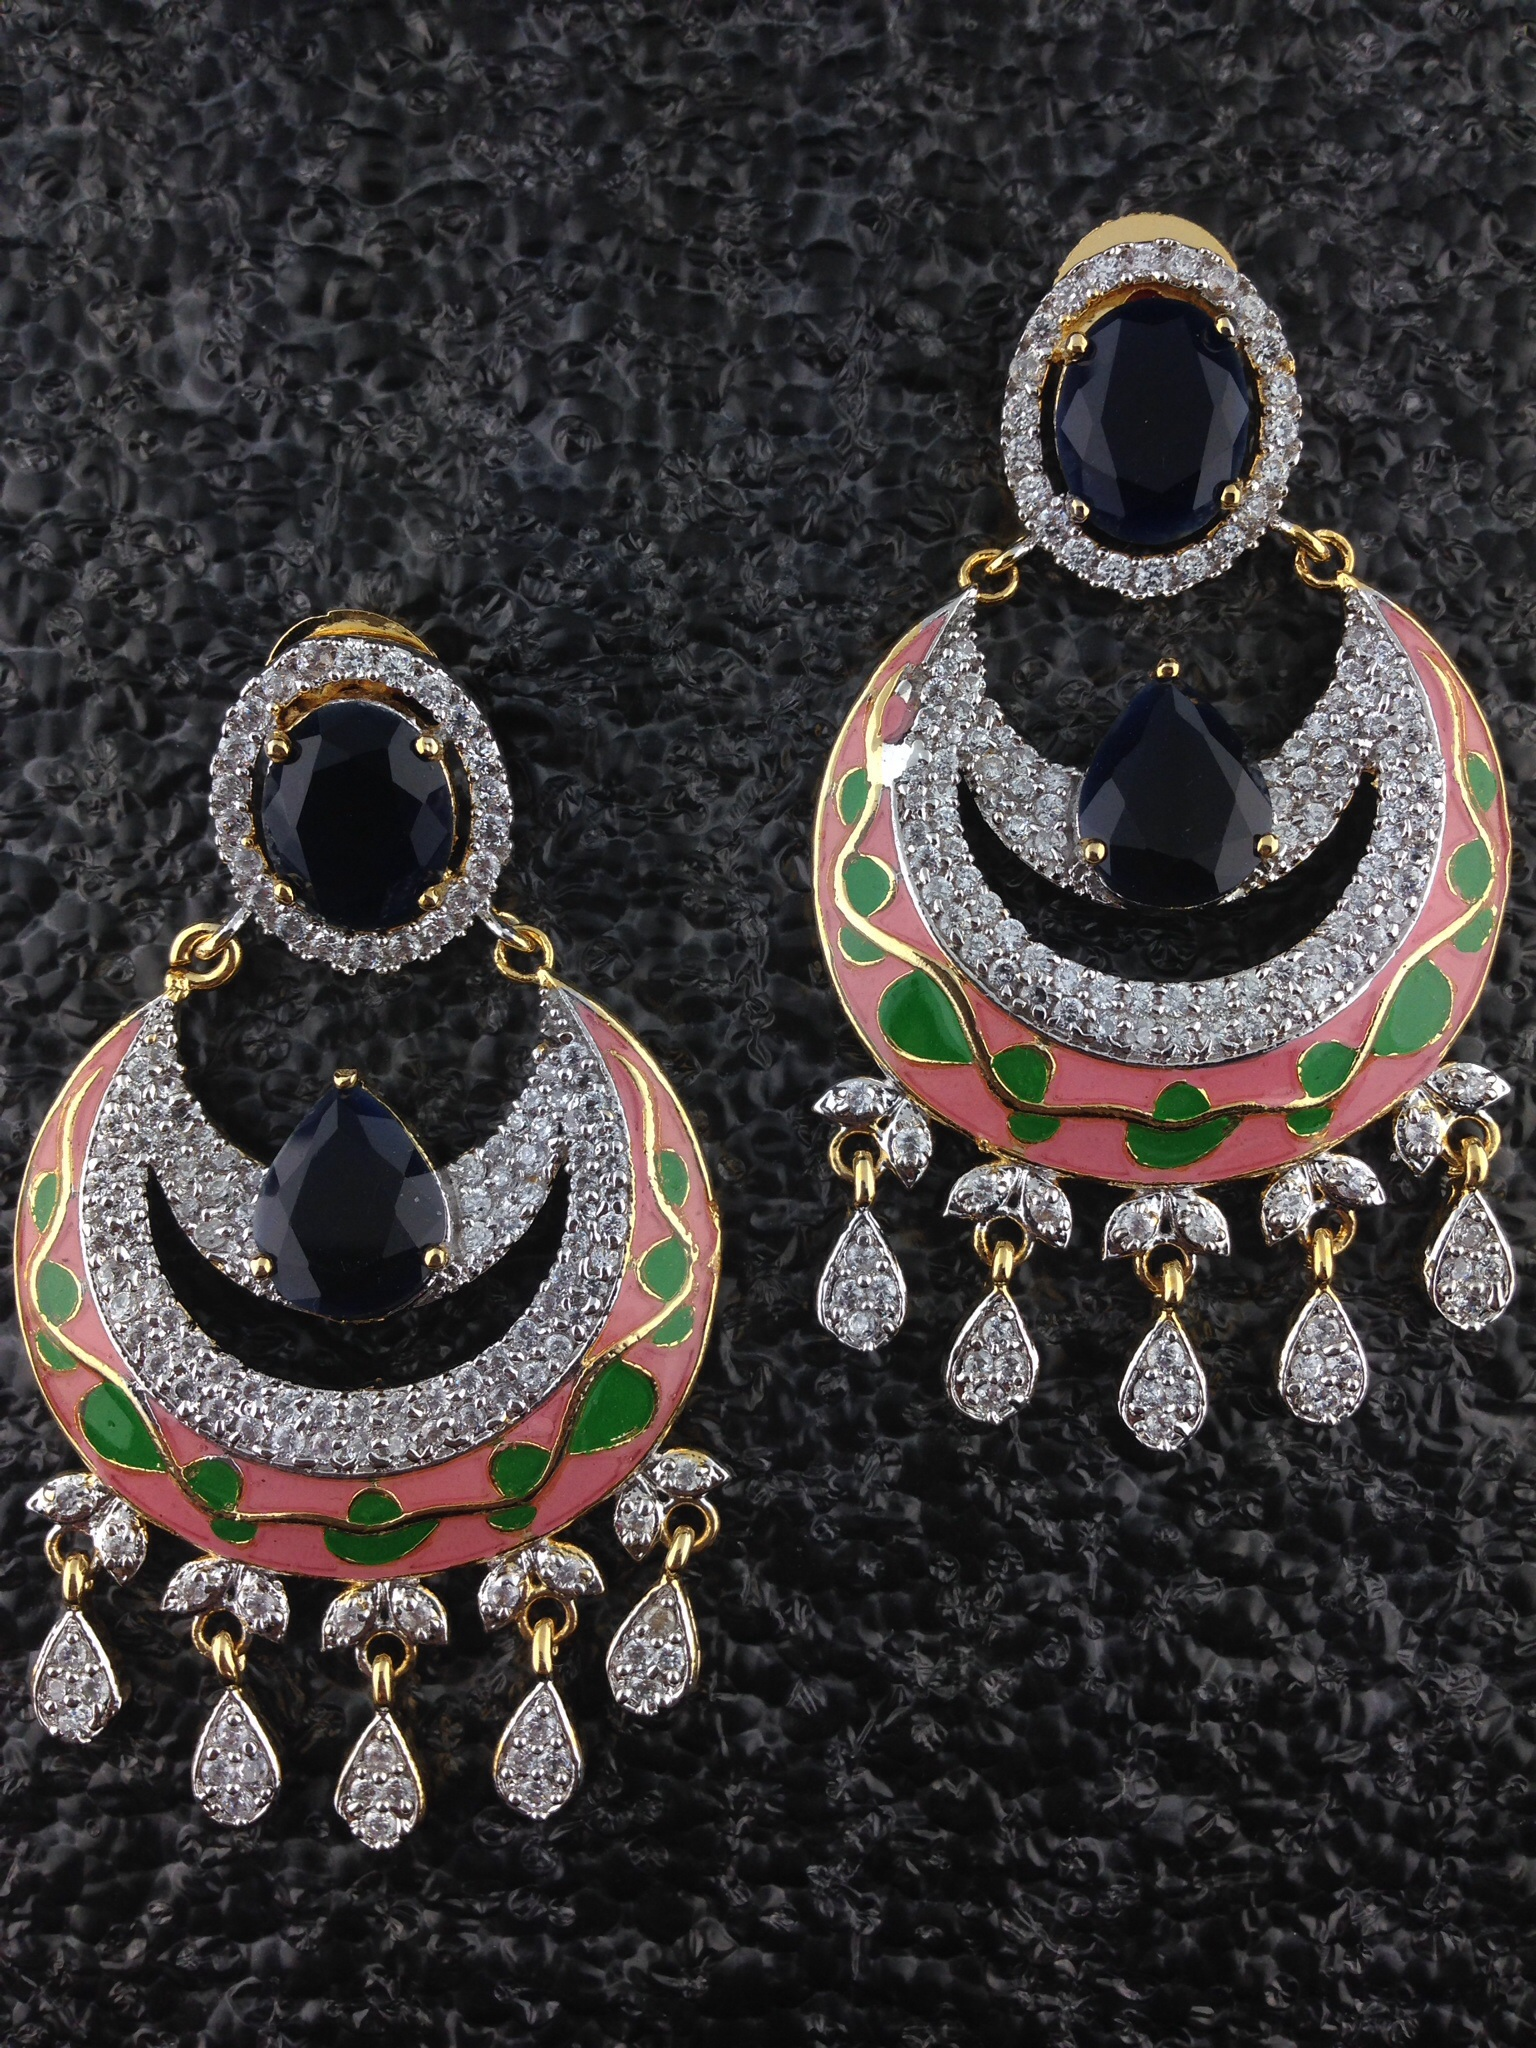 Orange CZ Designer Circular Earrings With black Onyx.